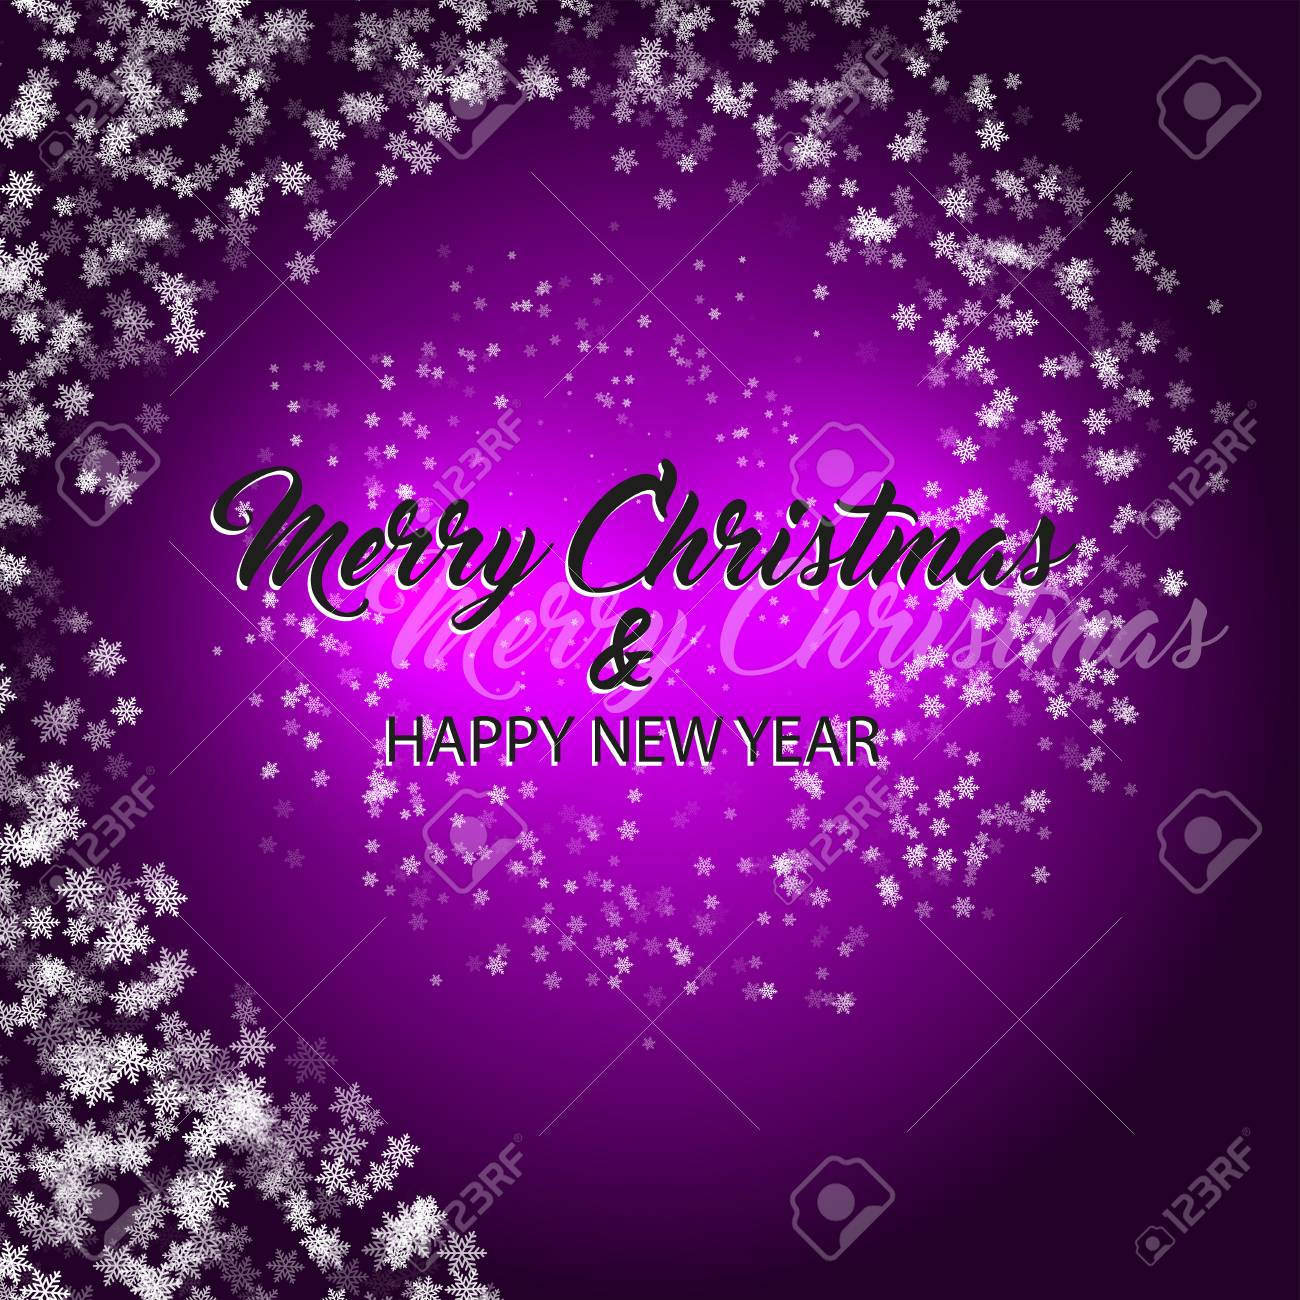 merry christmas and happy new year vector purple background stock vector 109895146